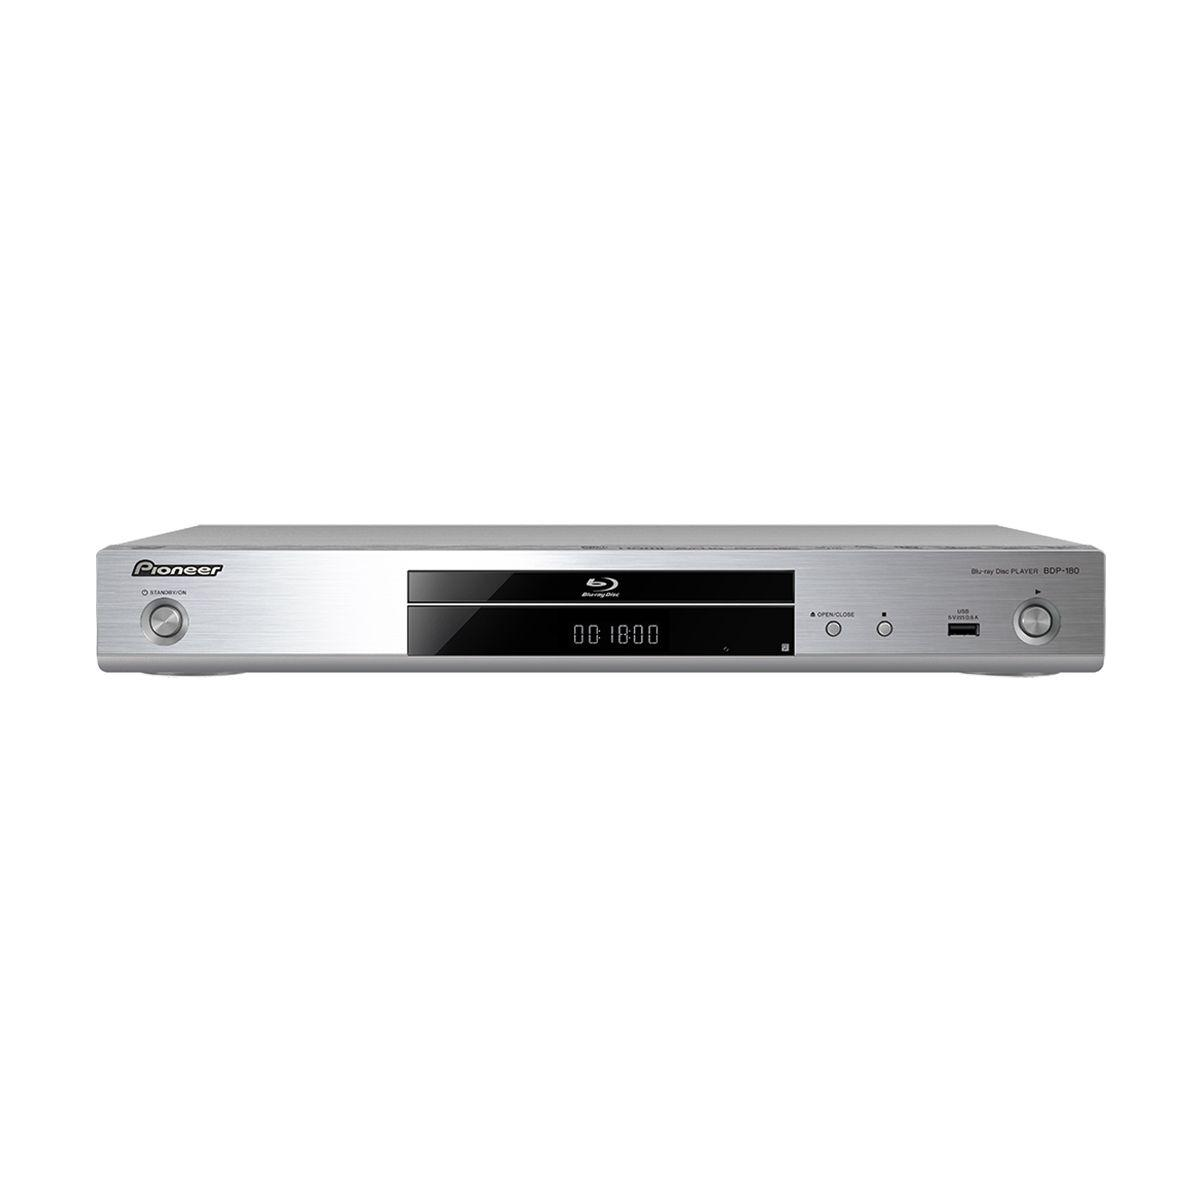 Lecteur blu-ray pioneer bdp180 silver (photo)